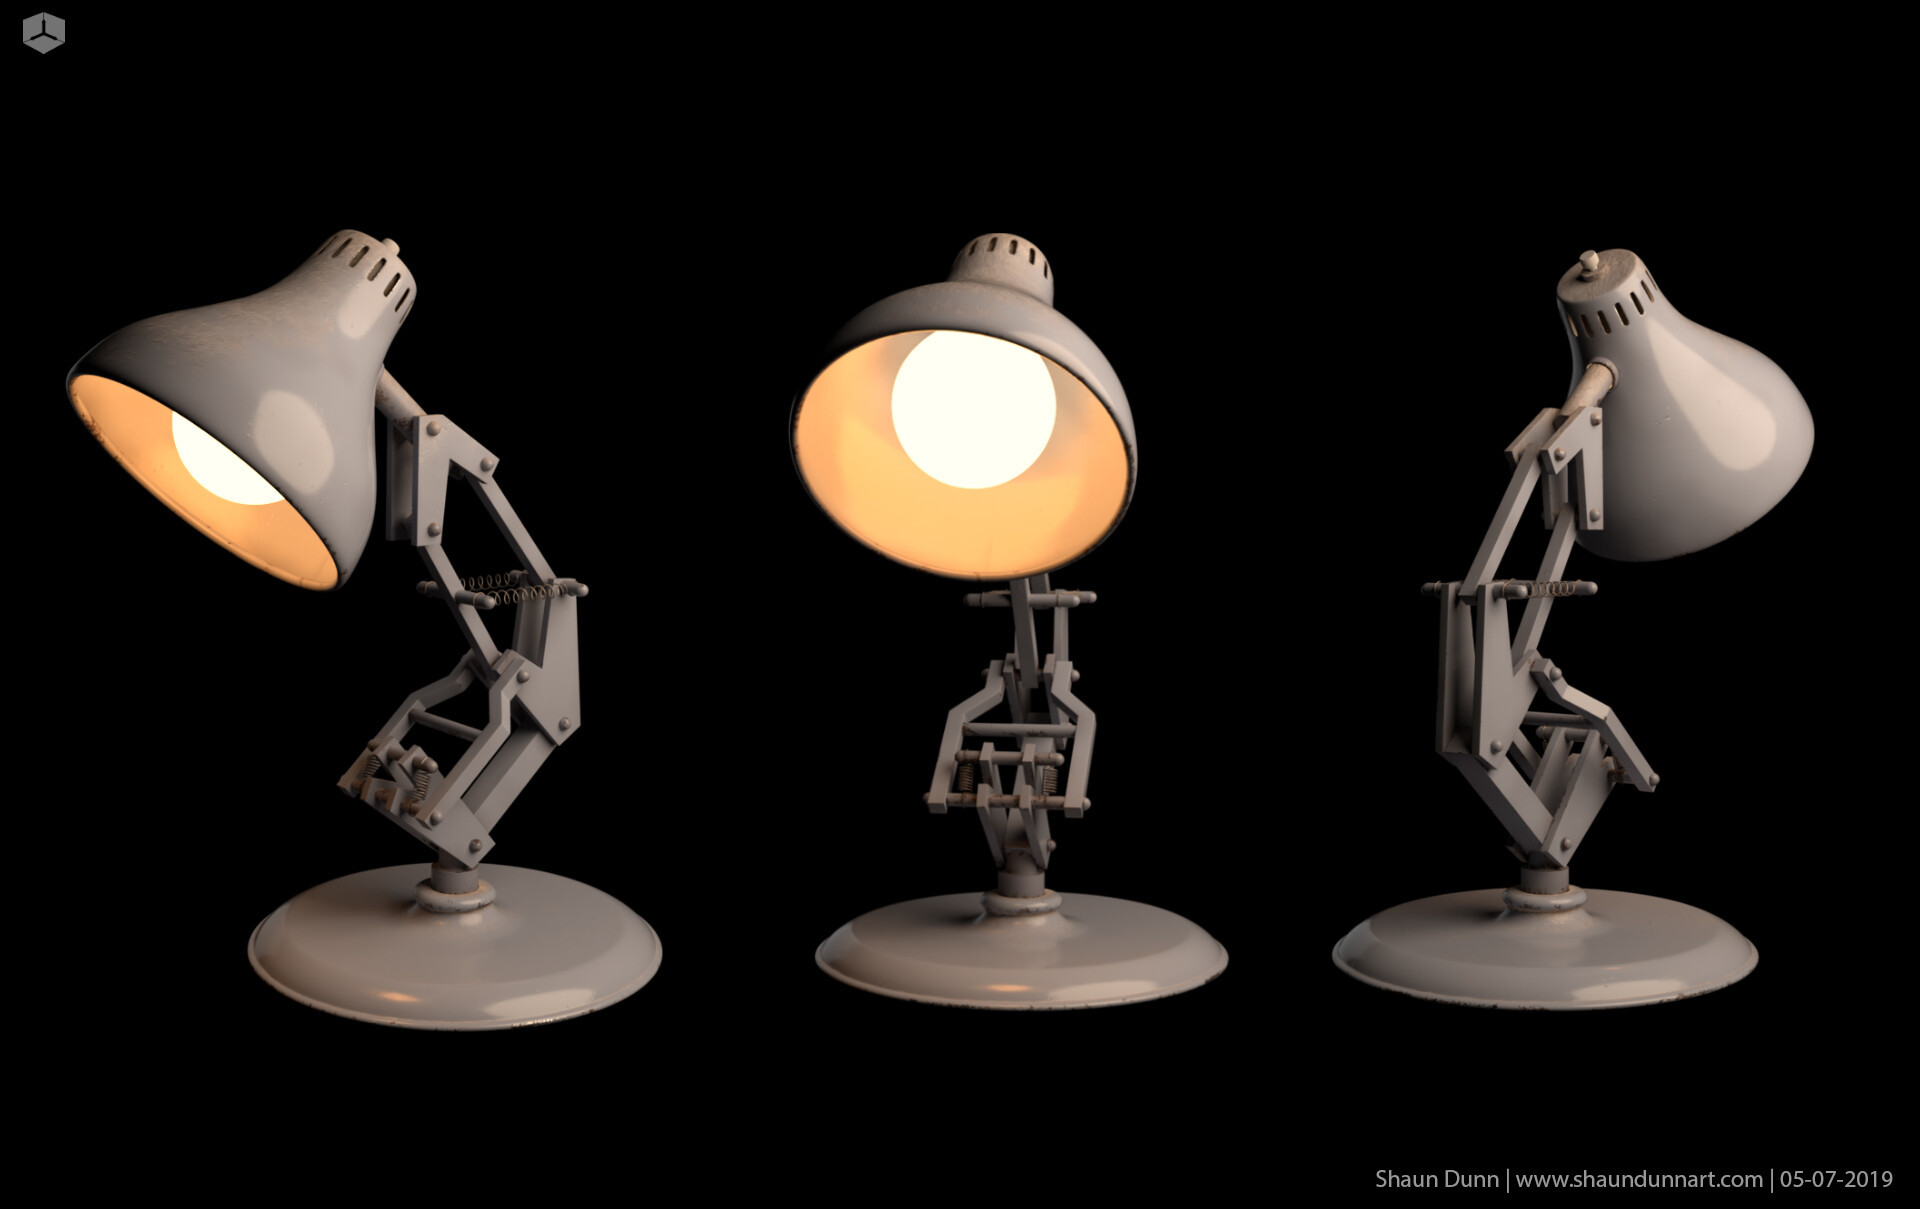 Luxo Jr textured with some fun lighting.